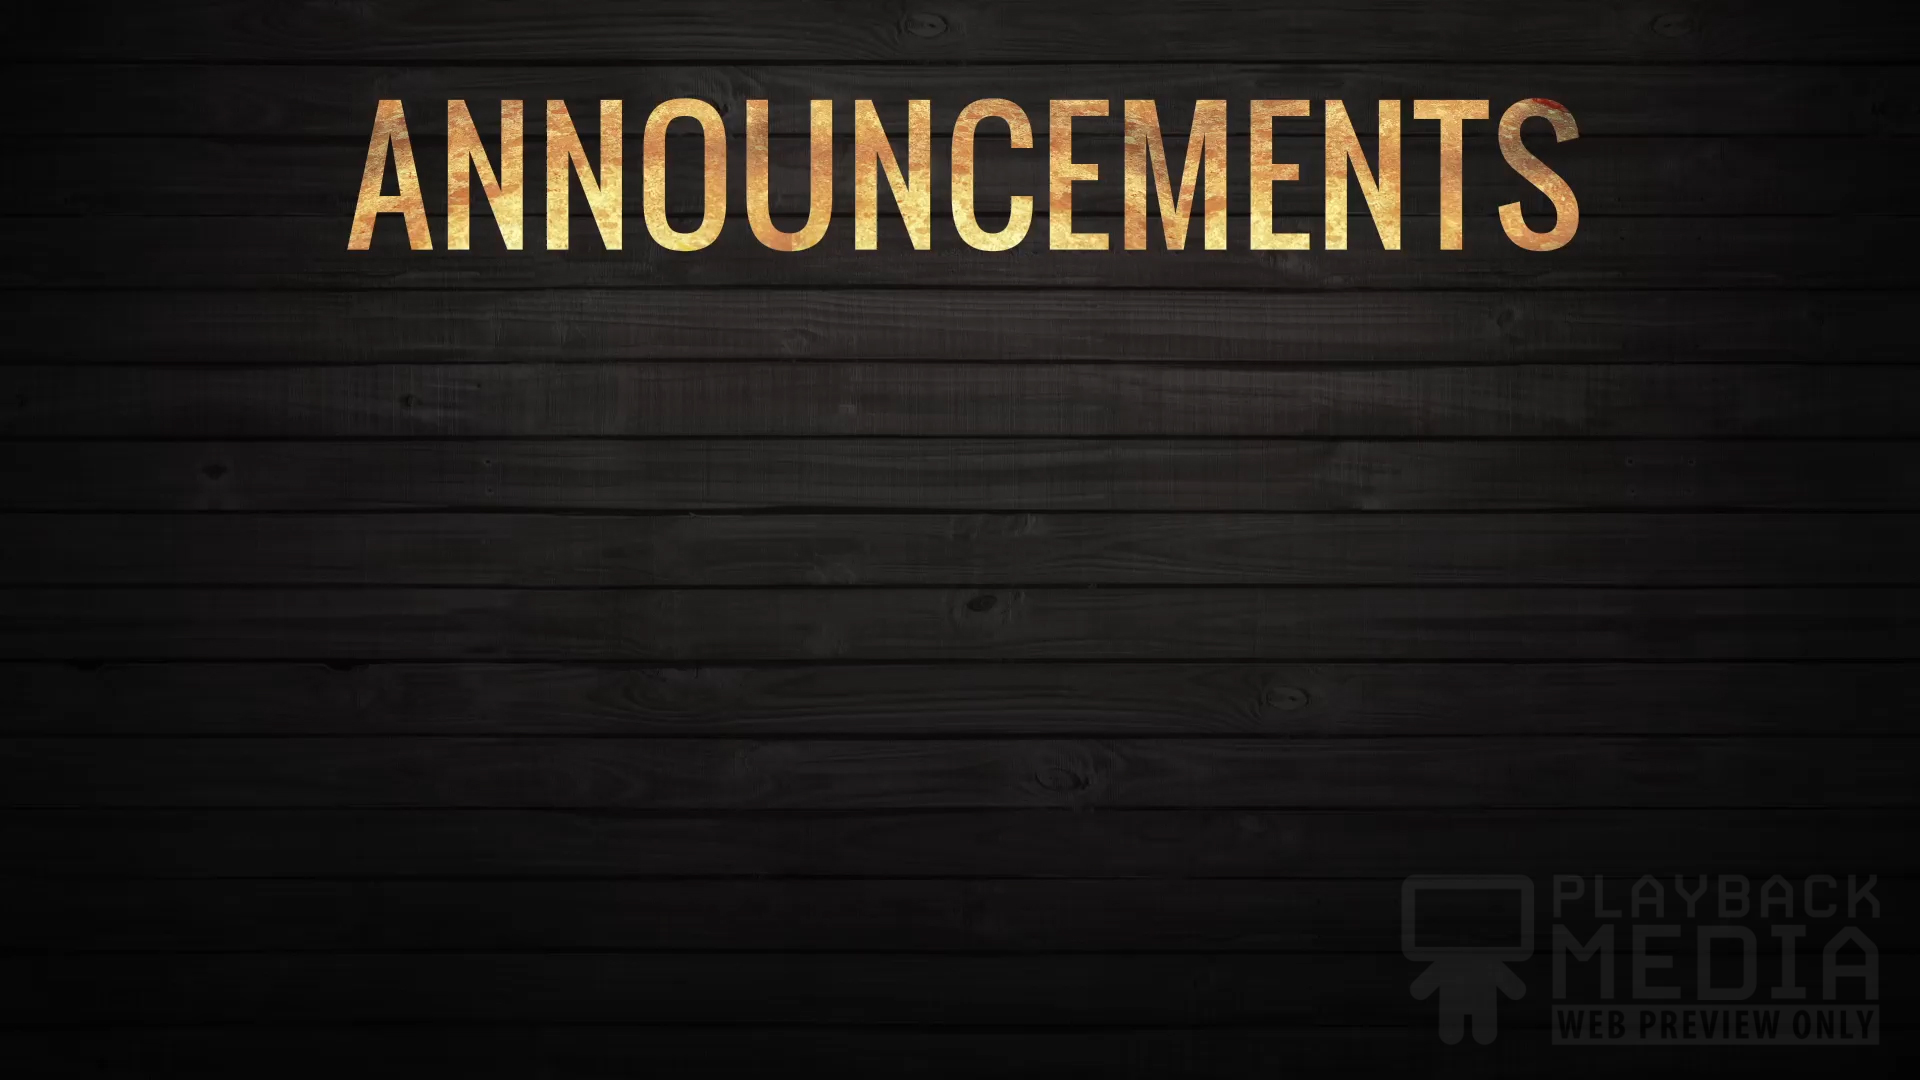 Best 56 Announcements Backgrounds on HipWallpaper Advent 1920x1080